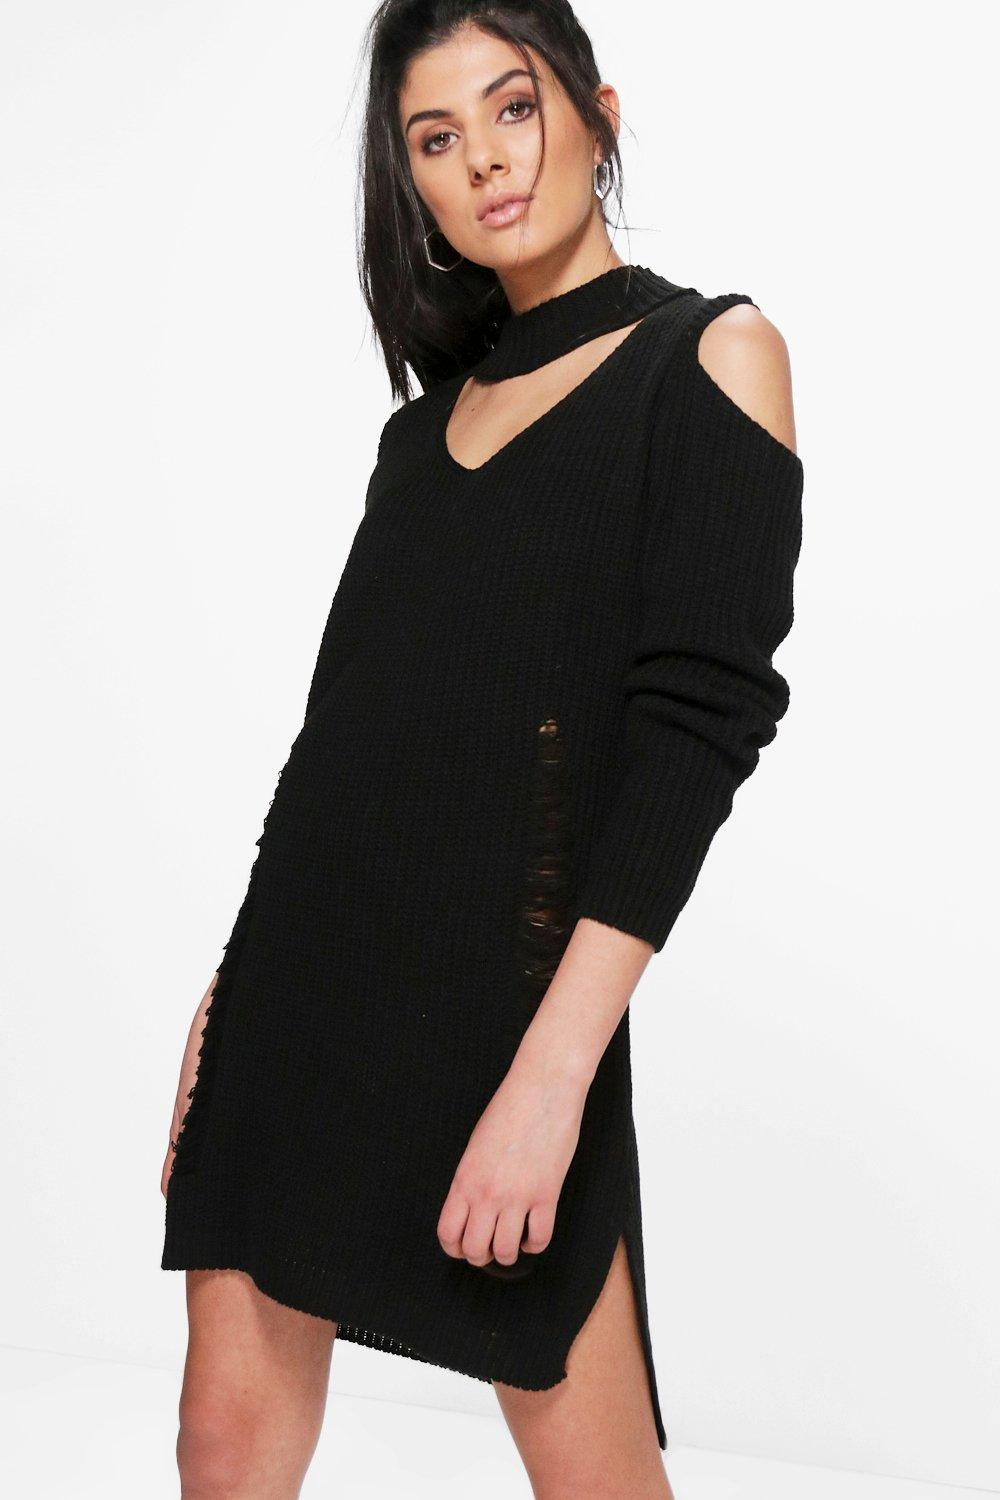 Keep warm in style with cardigans, jumpers and sweater dresses at amazing prices. Shop gorgeous knitwear from top quality brands like Vero Moda, Henri Lloyd and Brave Soul at low prices - .